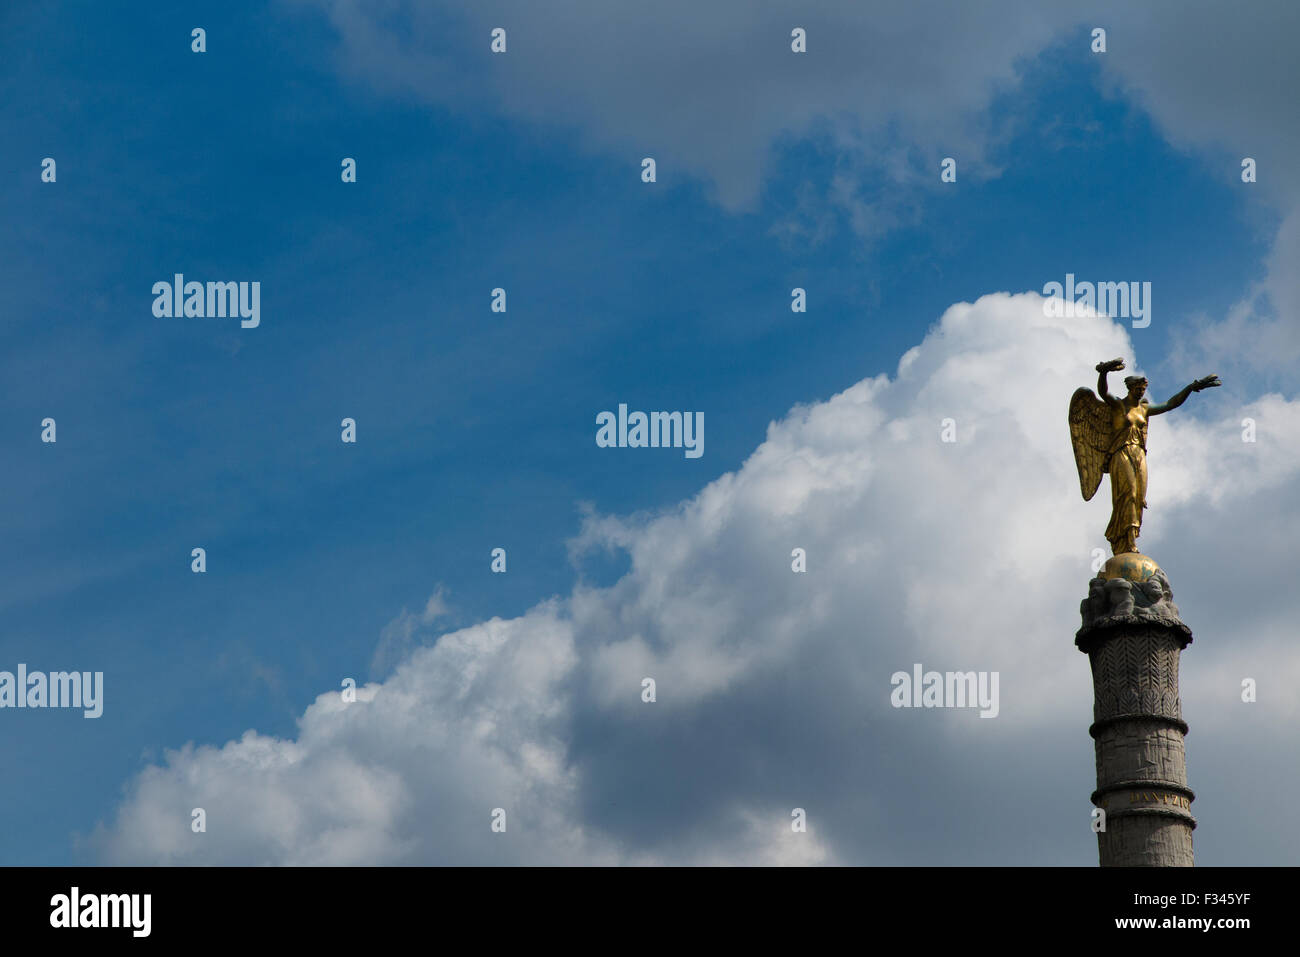 statue on column, Place de la Bastille, Paris, France - Stock Image